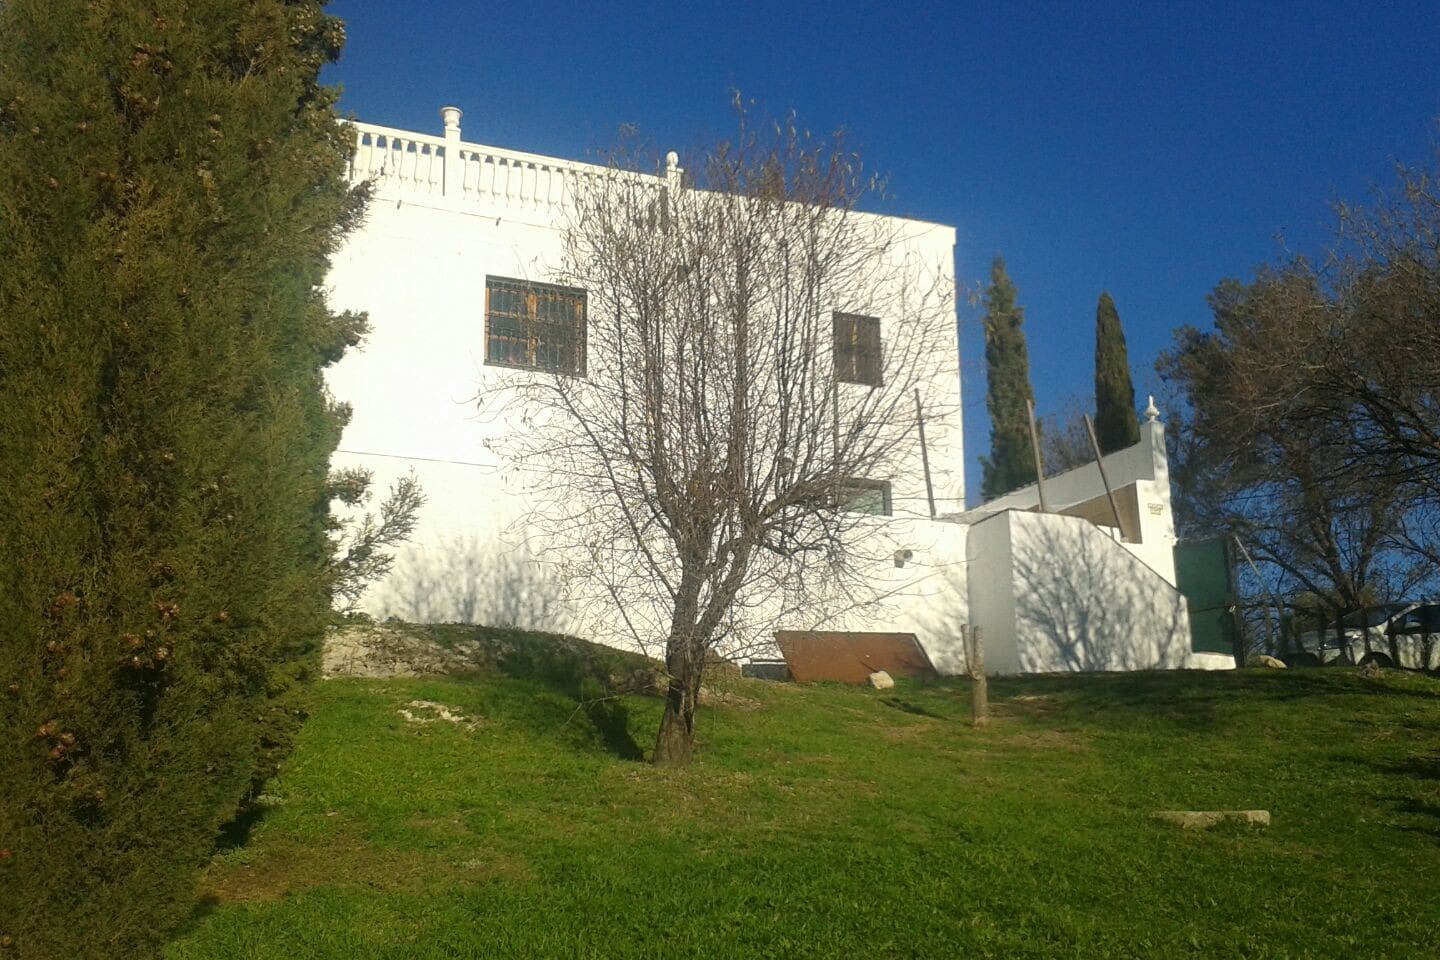 Casa as Lunas traditional white rustic  villa set in mountains and olive groves